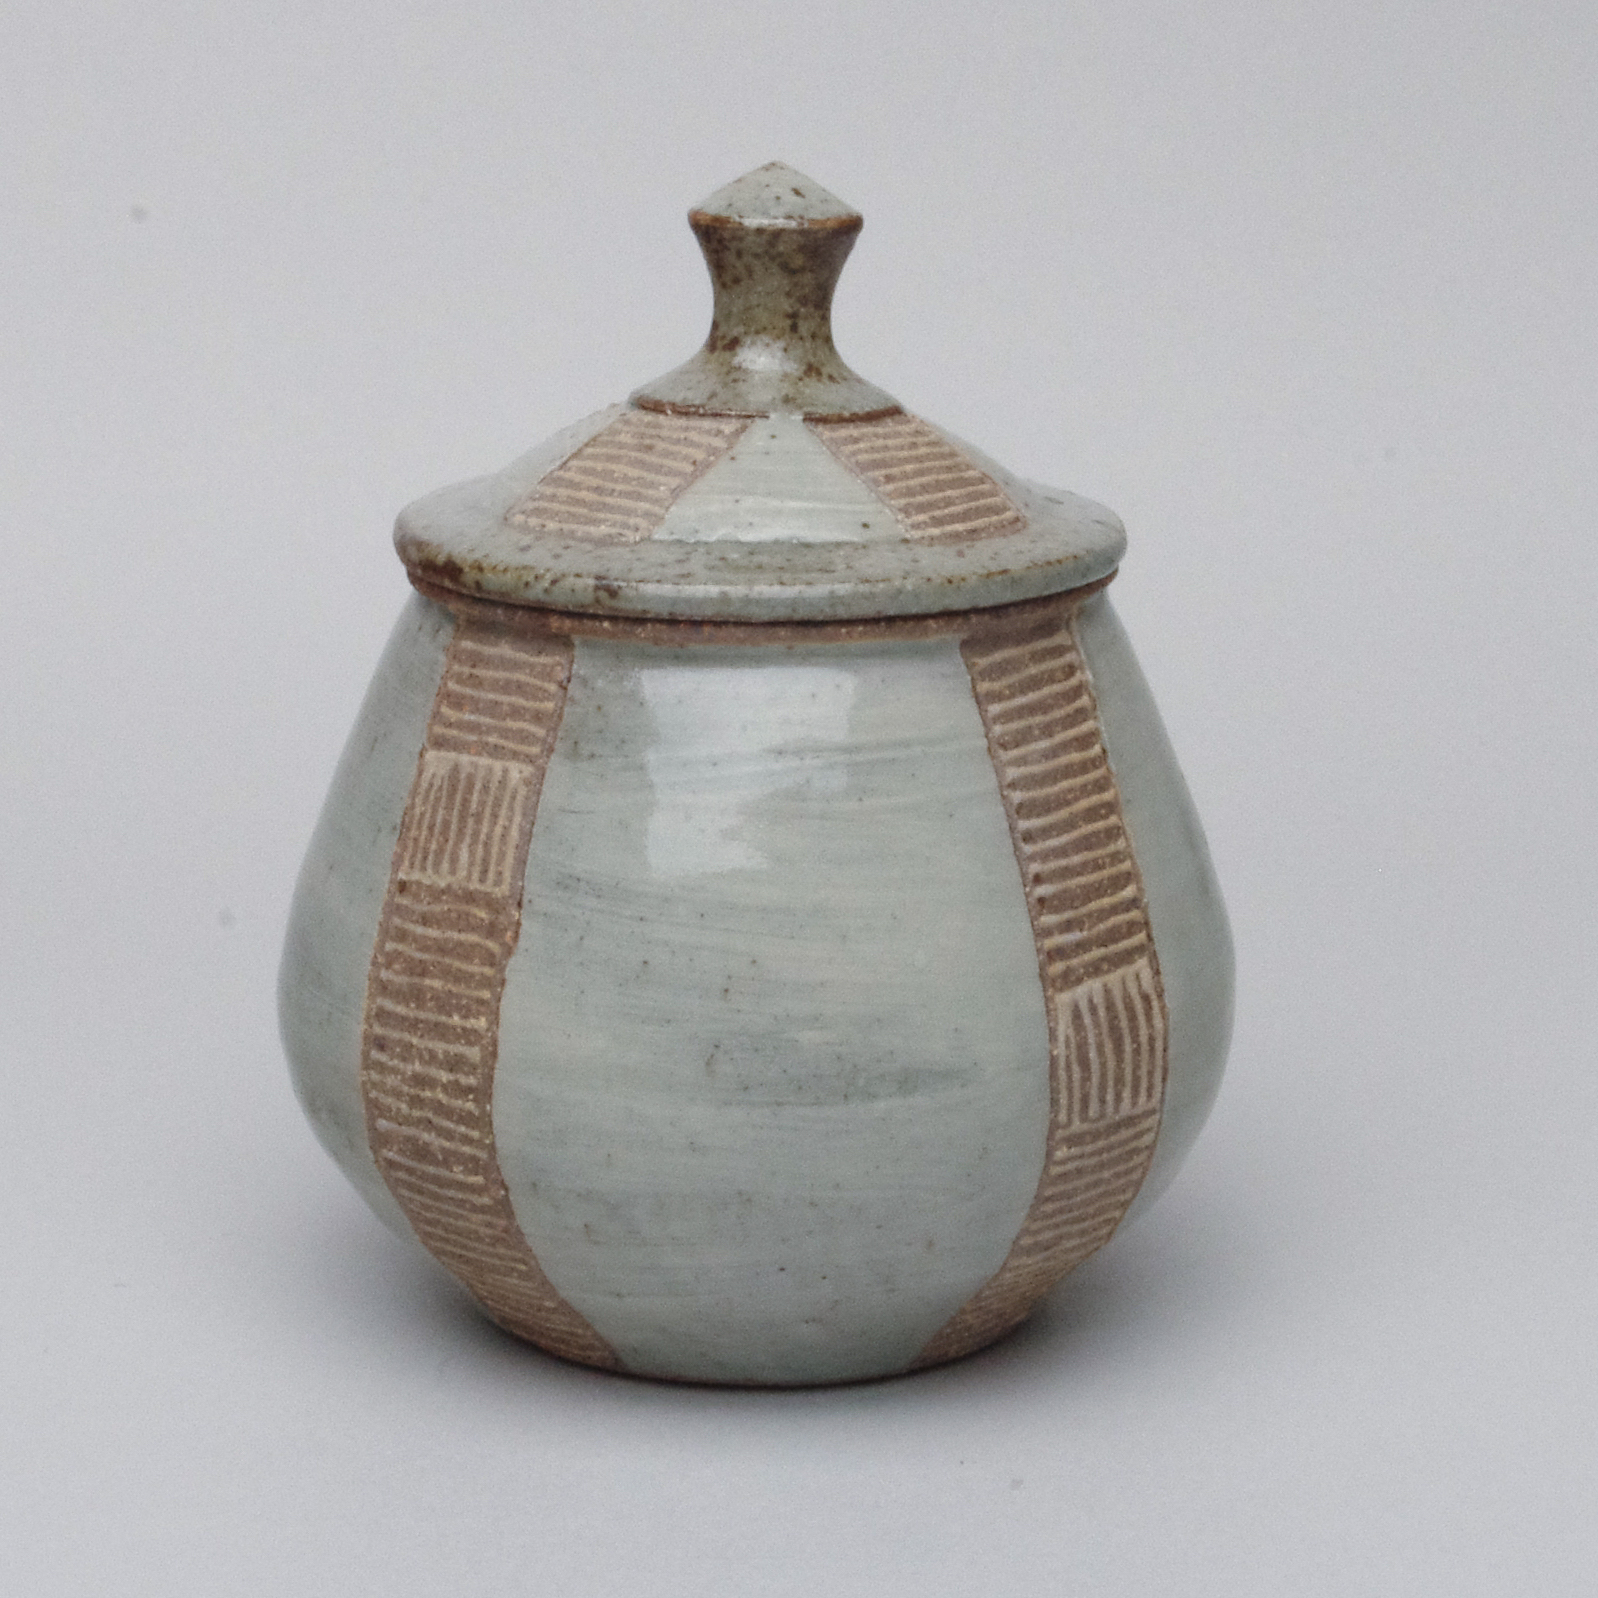 Slip Trailed and Ying Ching Glaze